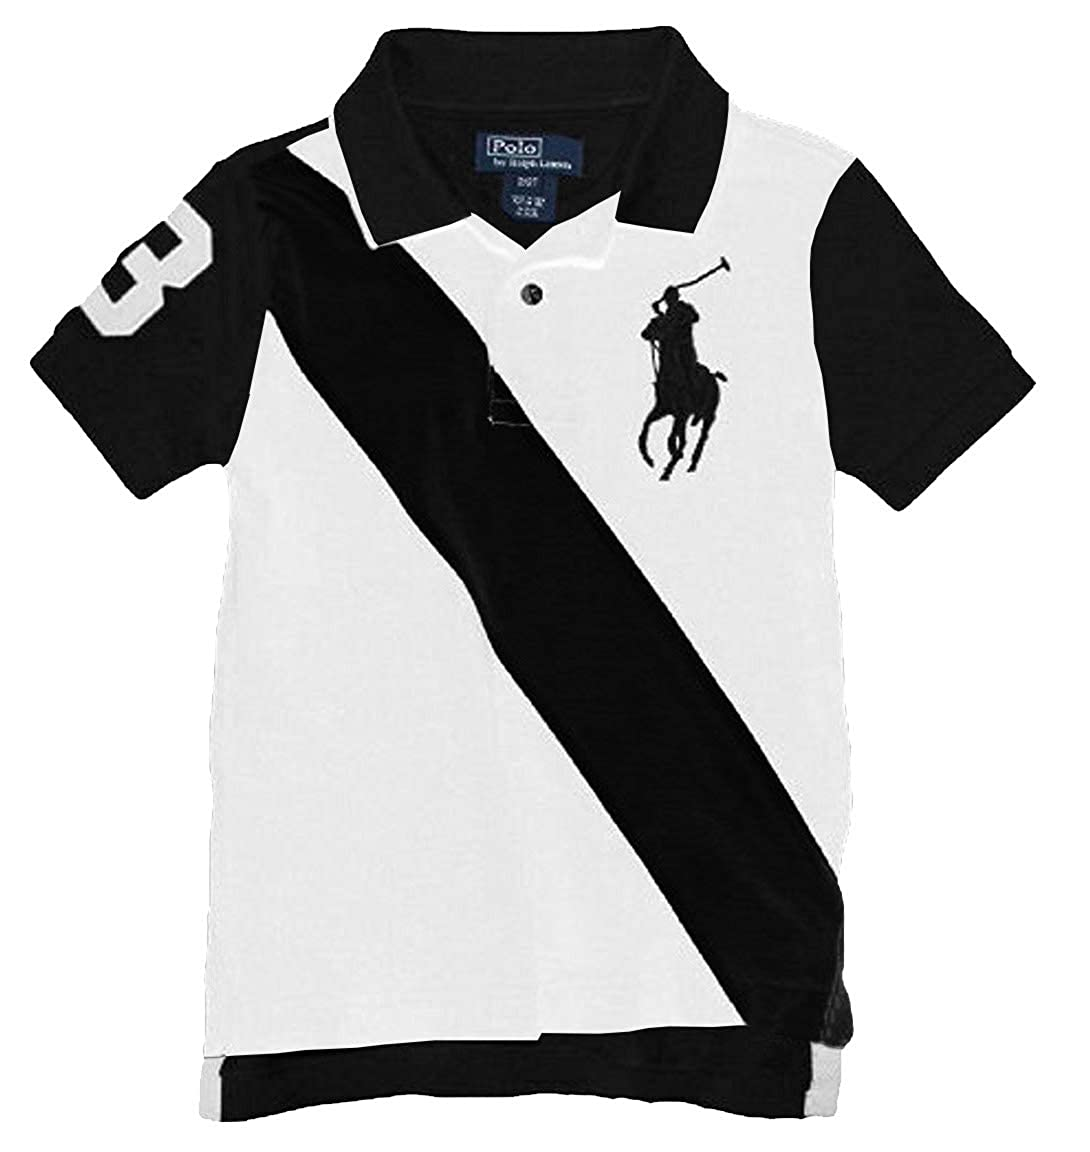 8b4b1226 Polo Ralph Lauren Black And White Polo Shirt – EDGE Engineering and ...